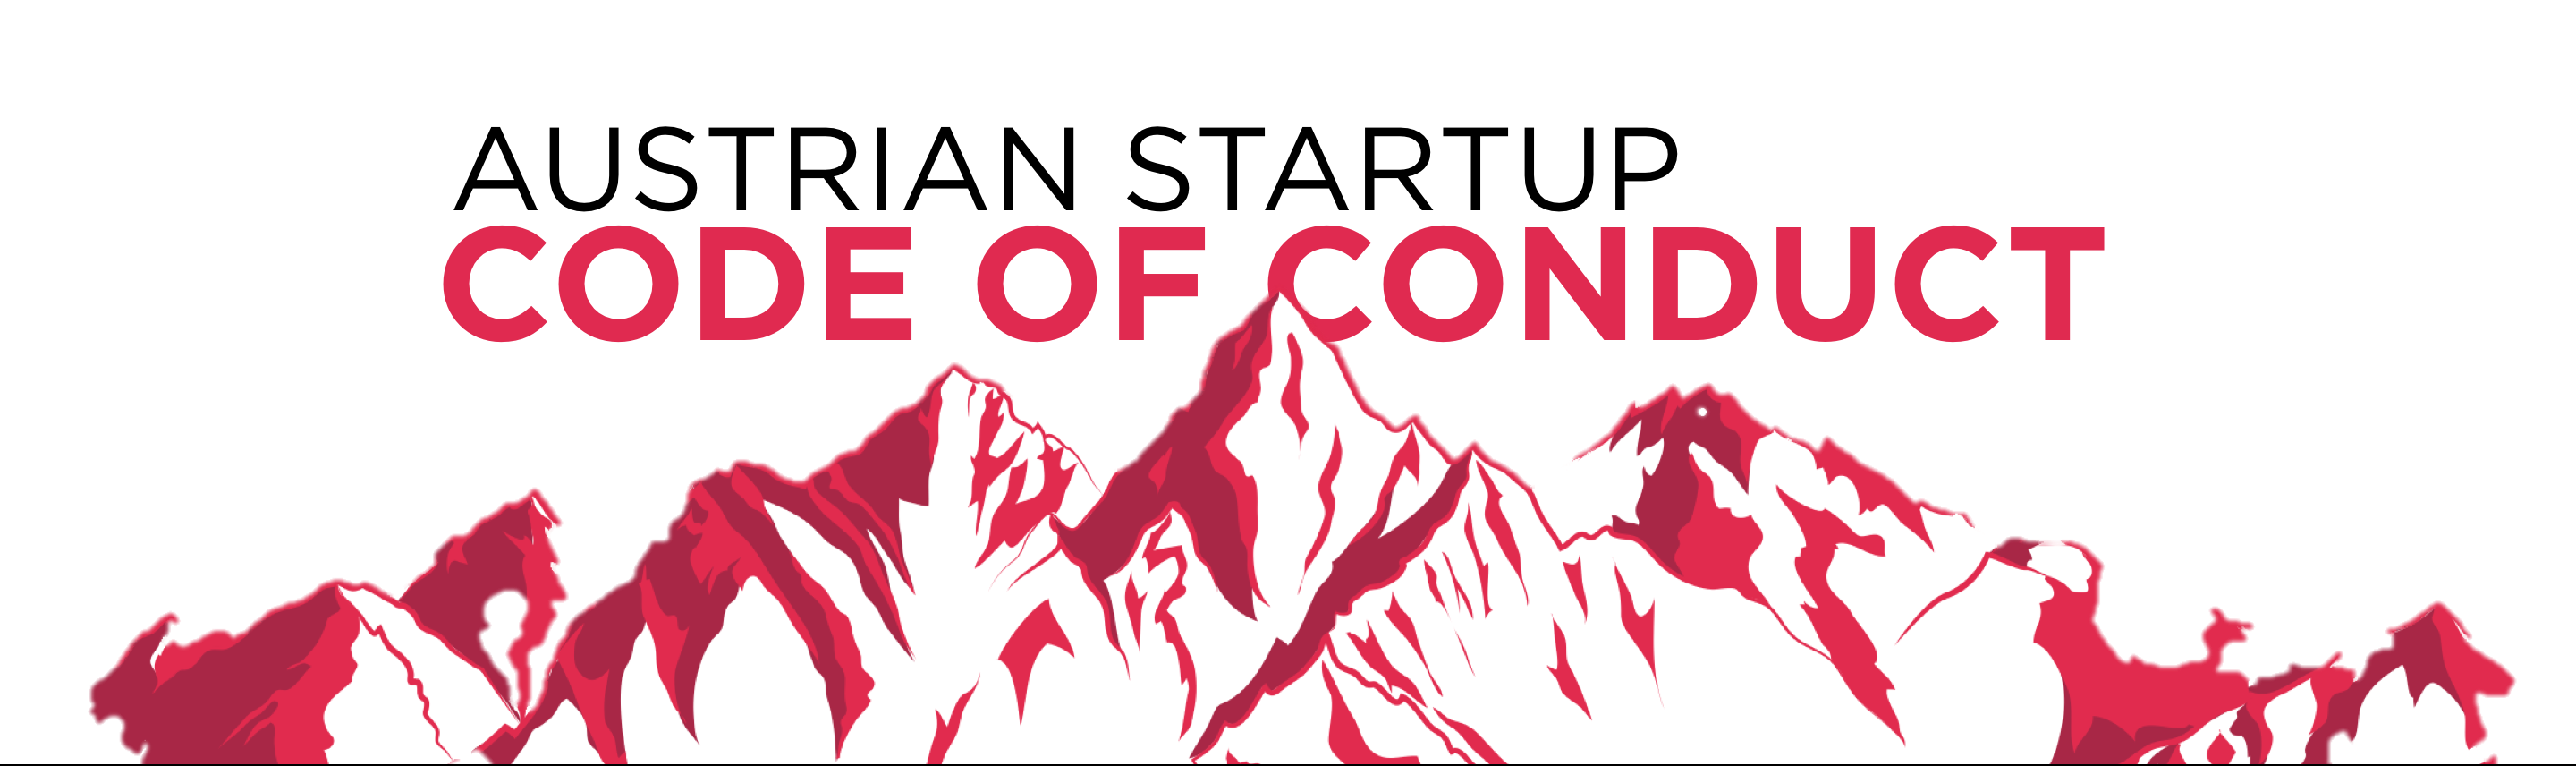 Code of conduct austrianstartups the austrian startup code of conduct is an initiative by for the austrian startup community it aims to establish a common ground for how we want to work buycottarizona Choice Image